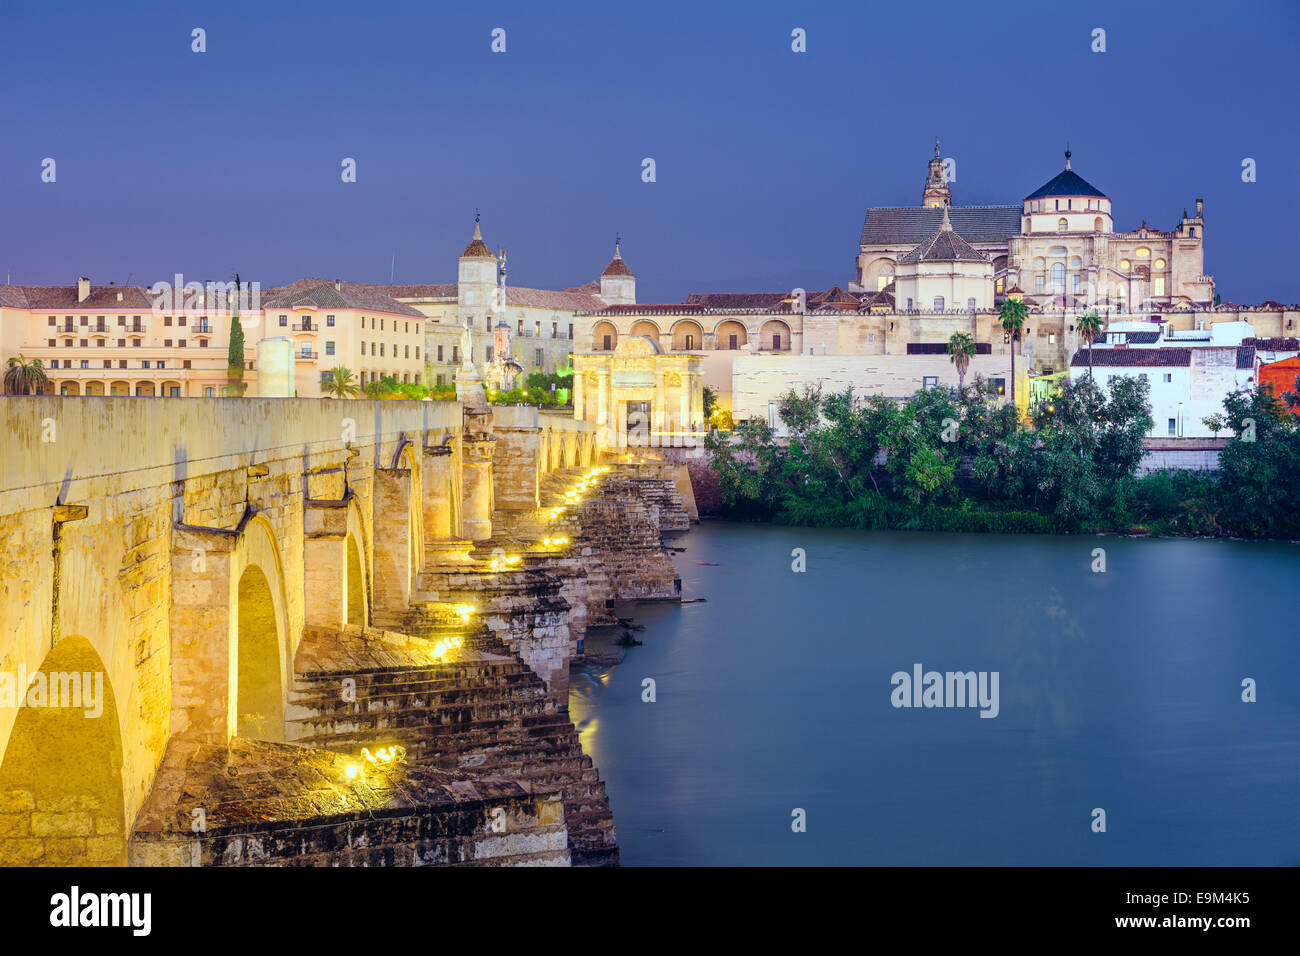 Cordoba, Spain view of the Roman Bridge and Mosque-Cathedral on the Guadalquivir River. - Stock Image